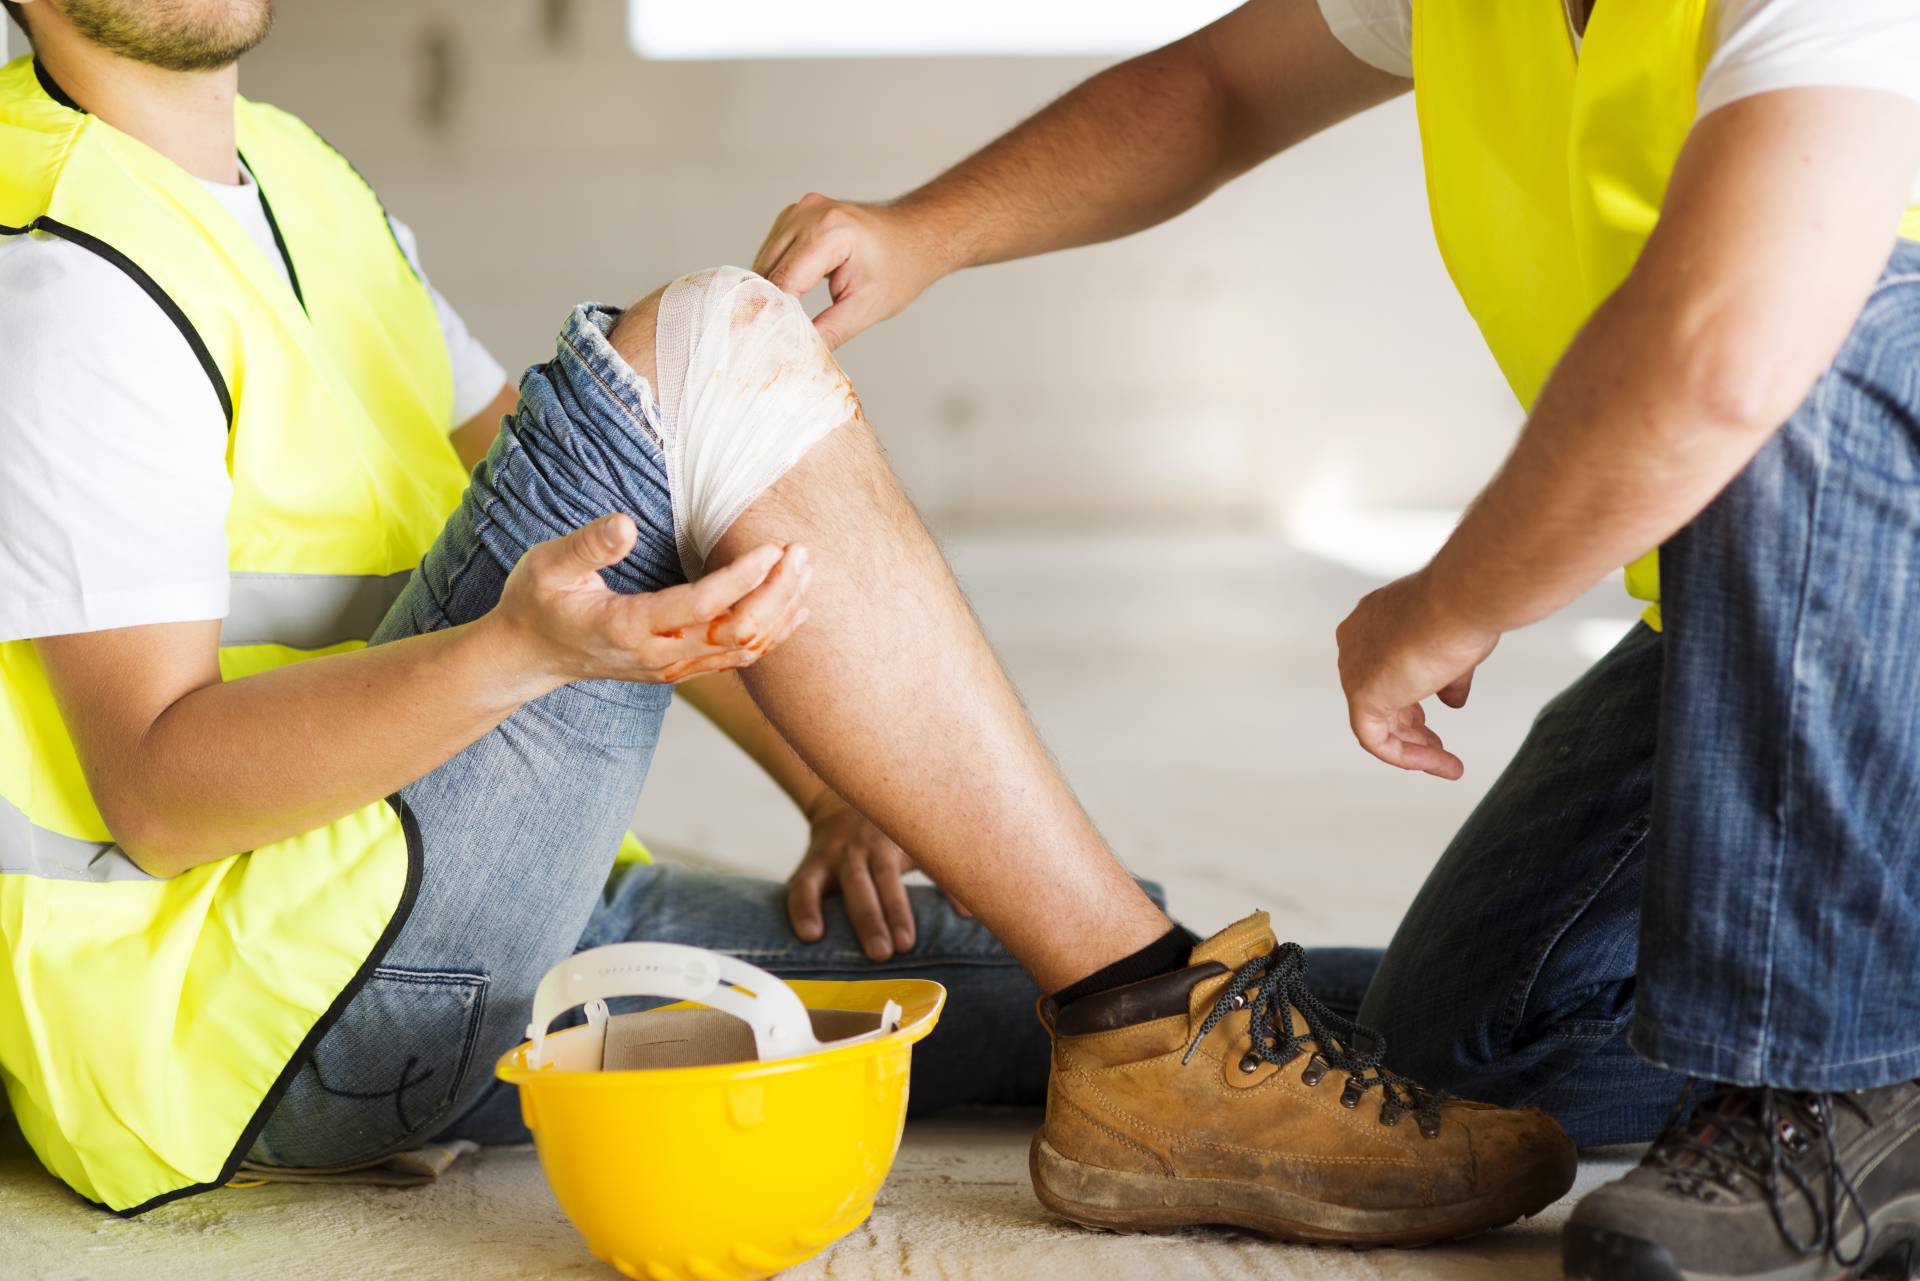 Injury from faulty Equipment in a Statham, GA business